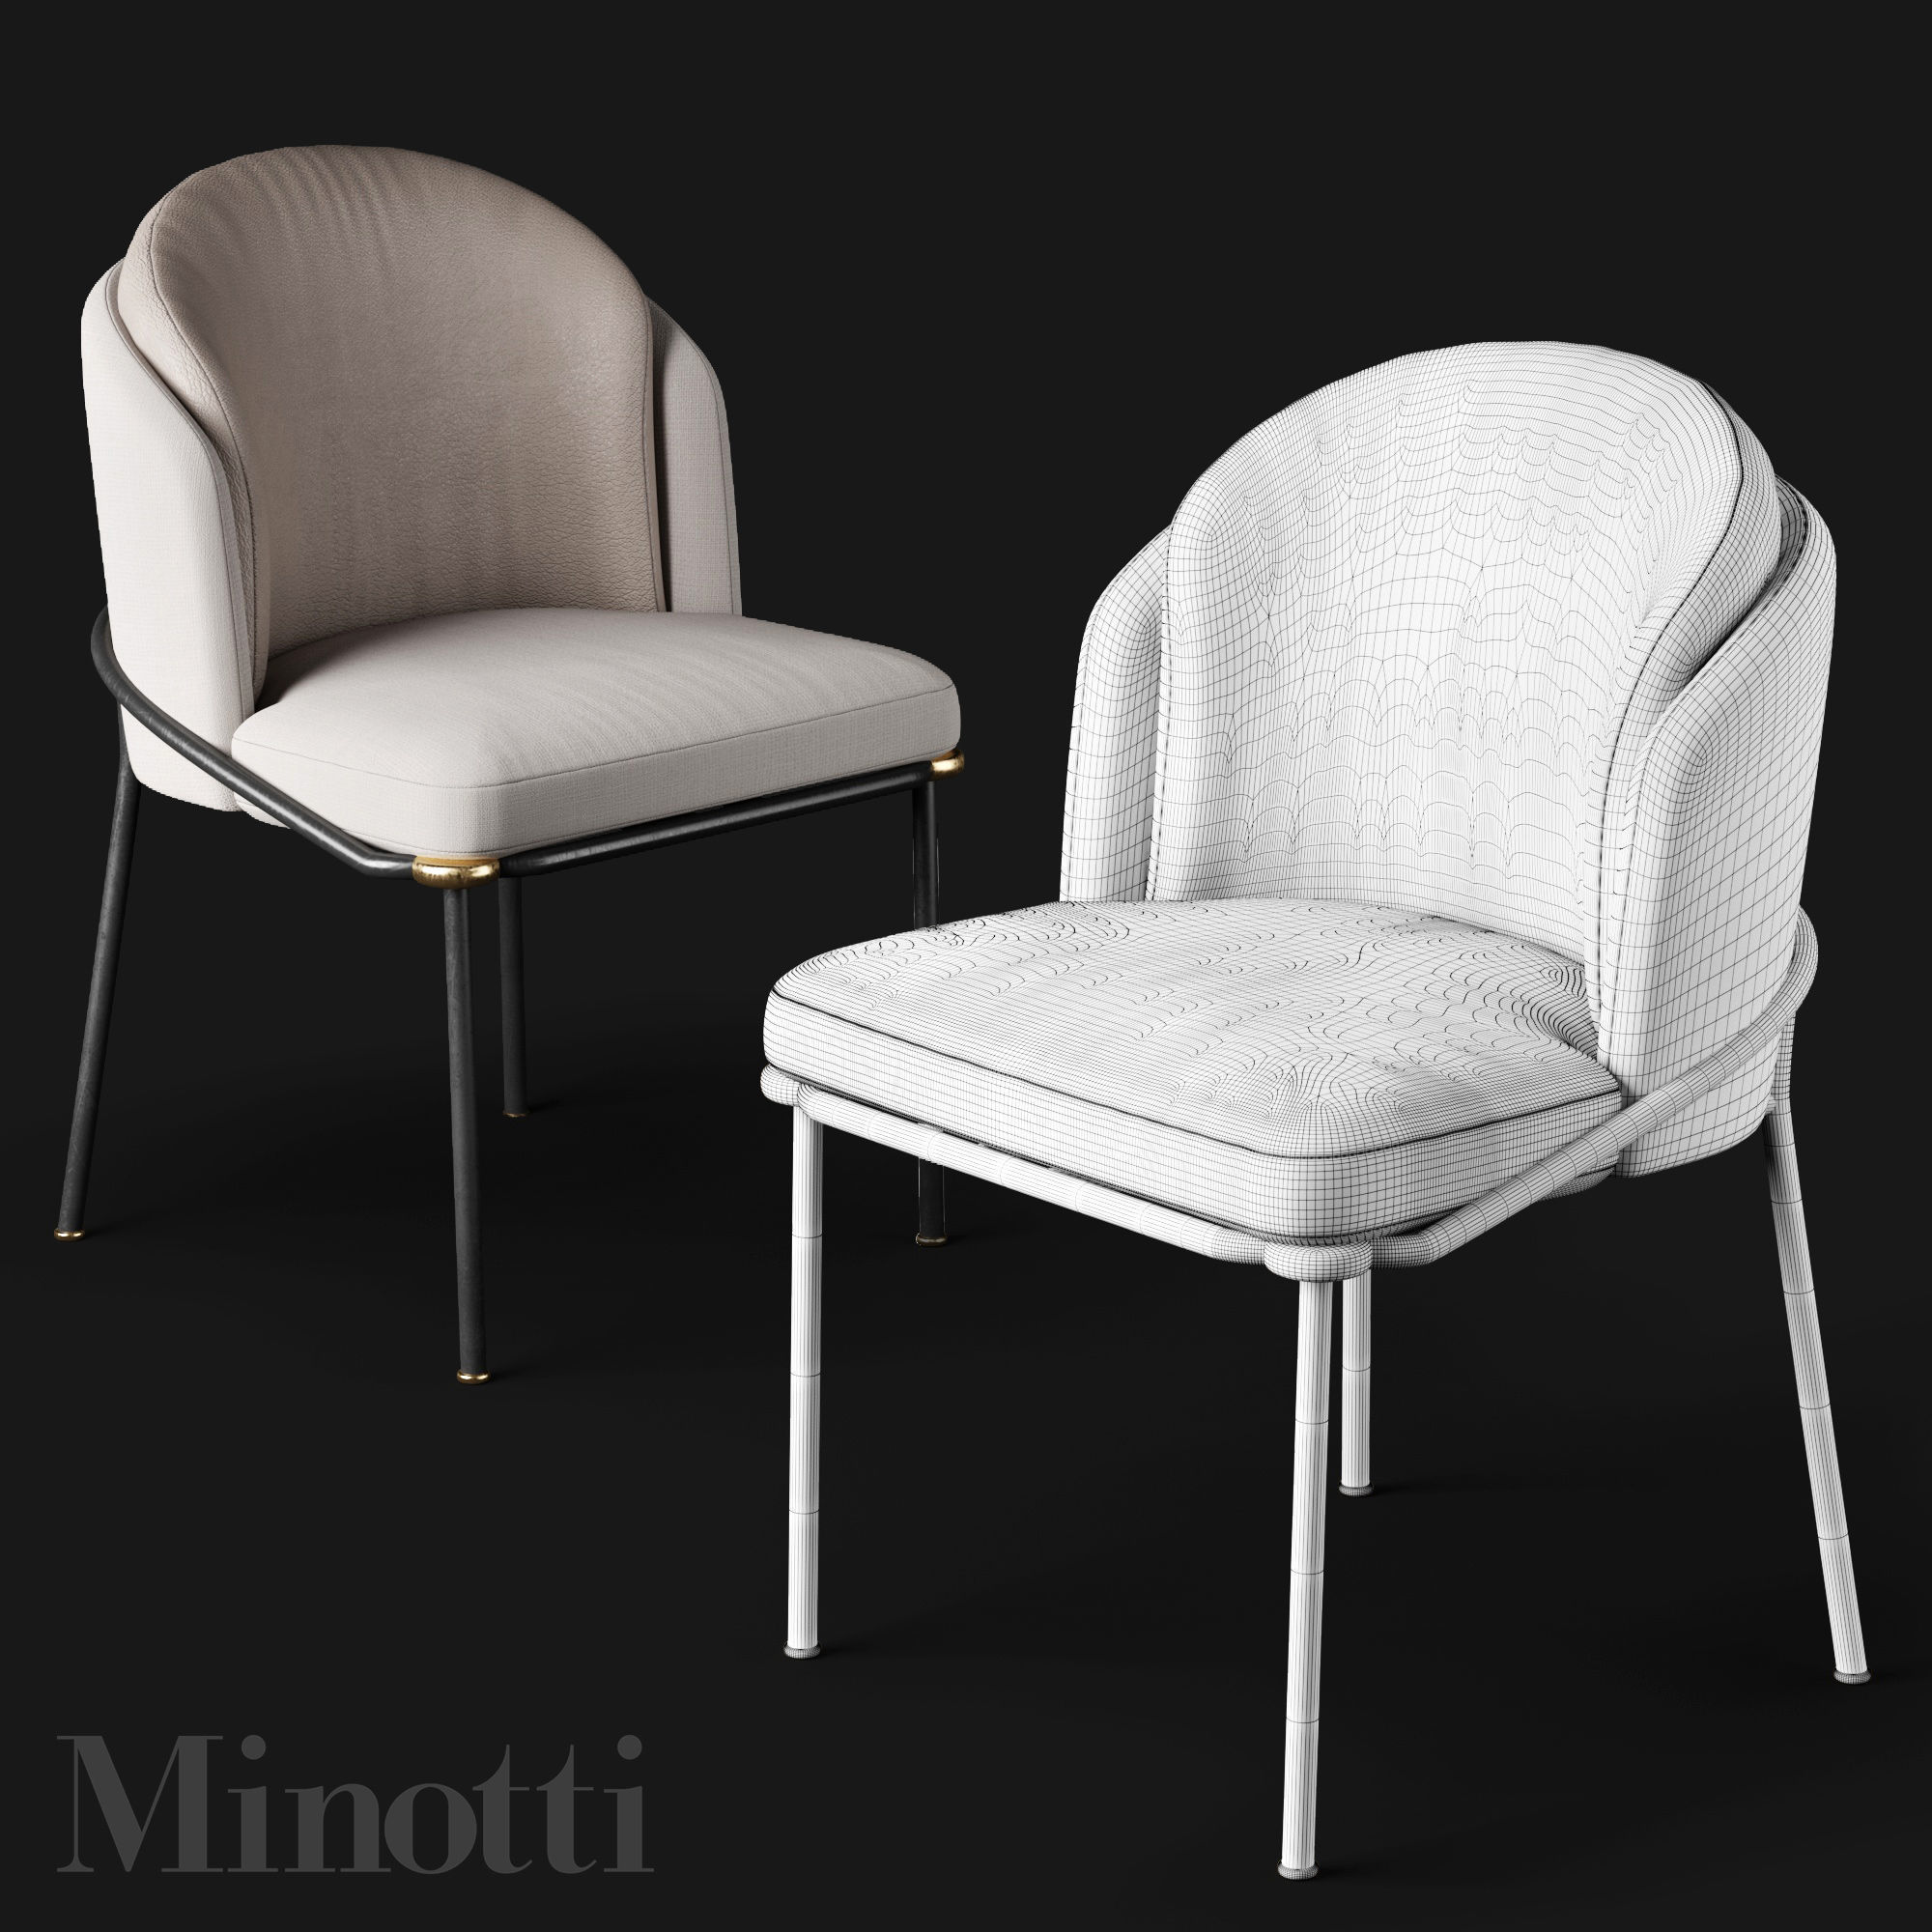 ... dining chairs minotti fil noir 3d model max obj fbx mtl 4 ... : noir dining chairs - Cheerinfomania.Com